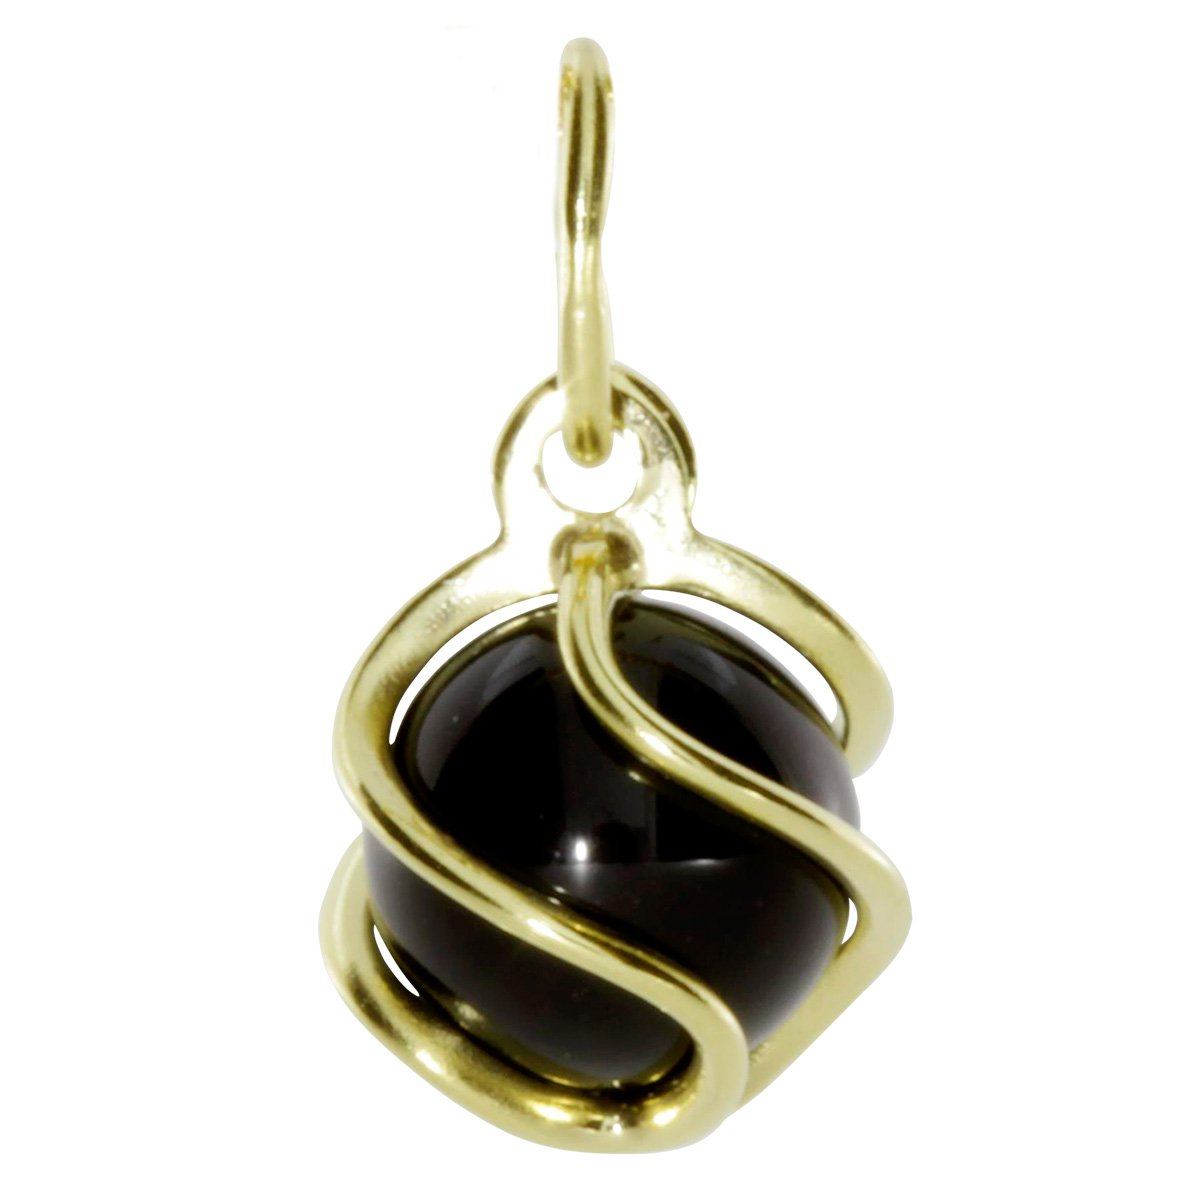 InCollections Damen-Anh/änger 333//000 Gold mit Onyx 0080100013401